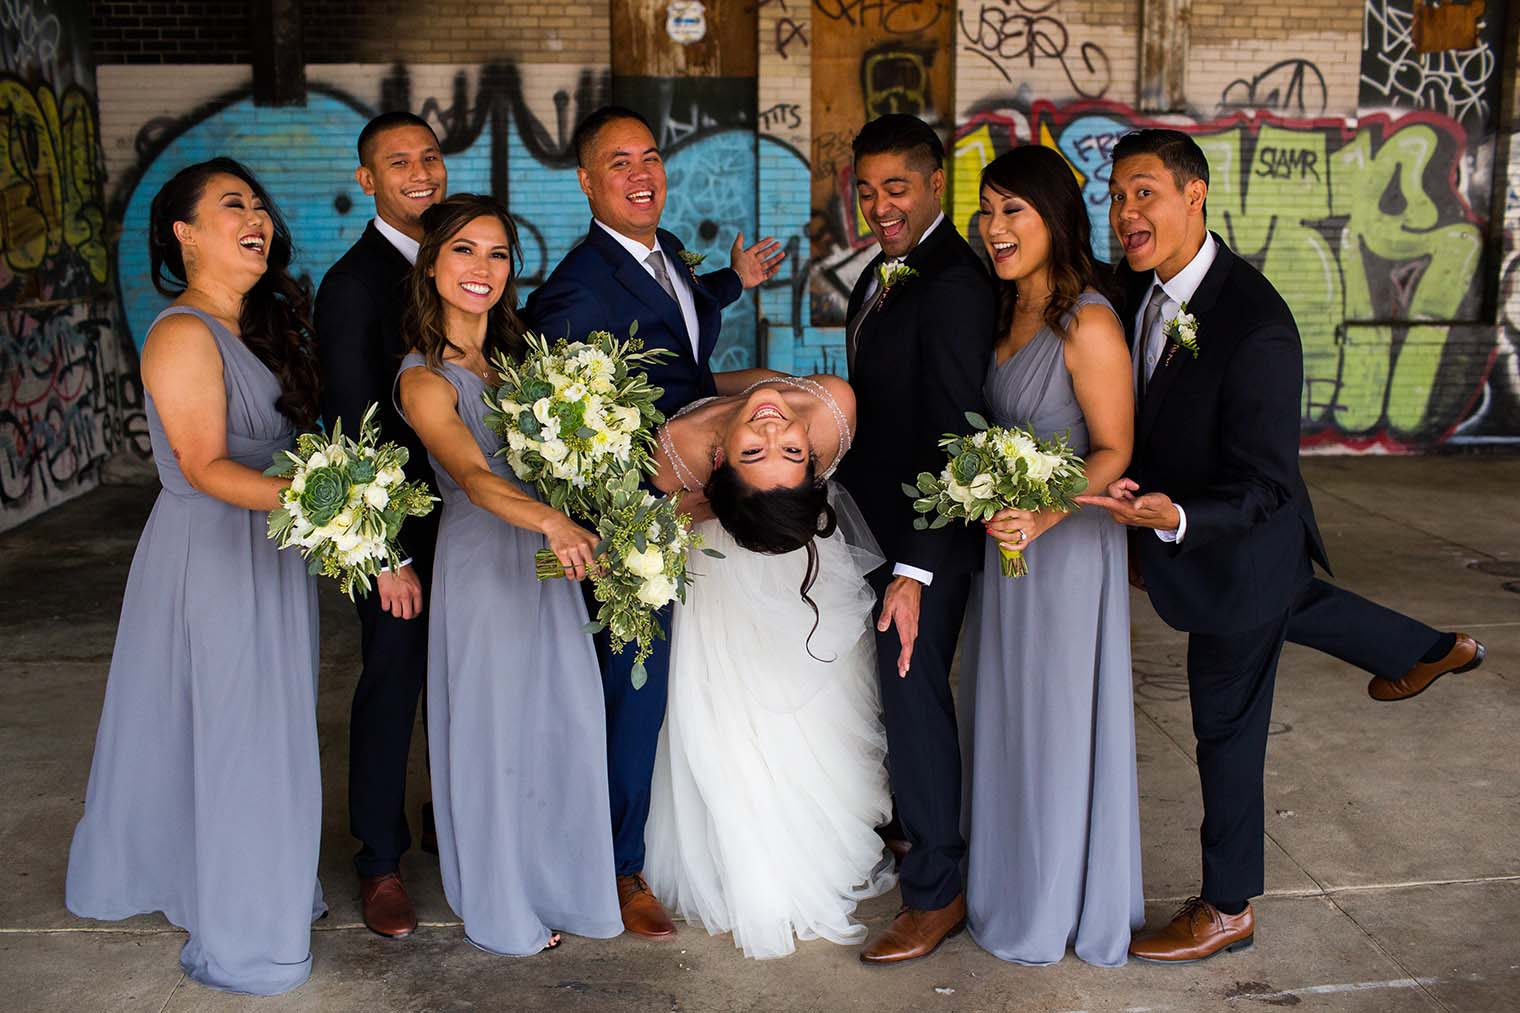 16th Street Station Wedding Bridal Party